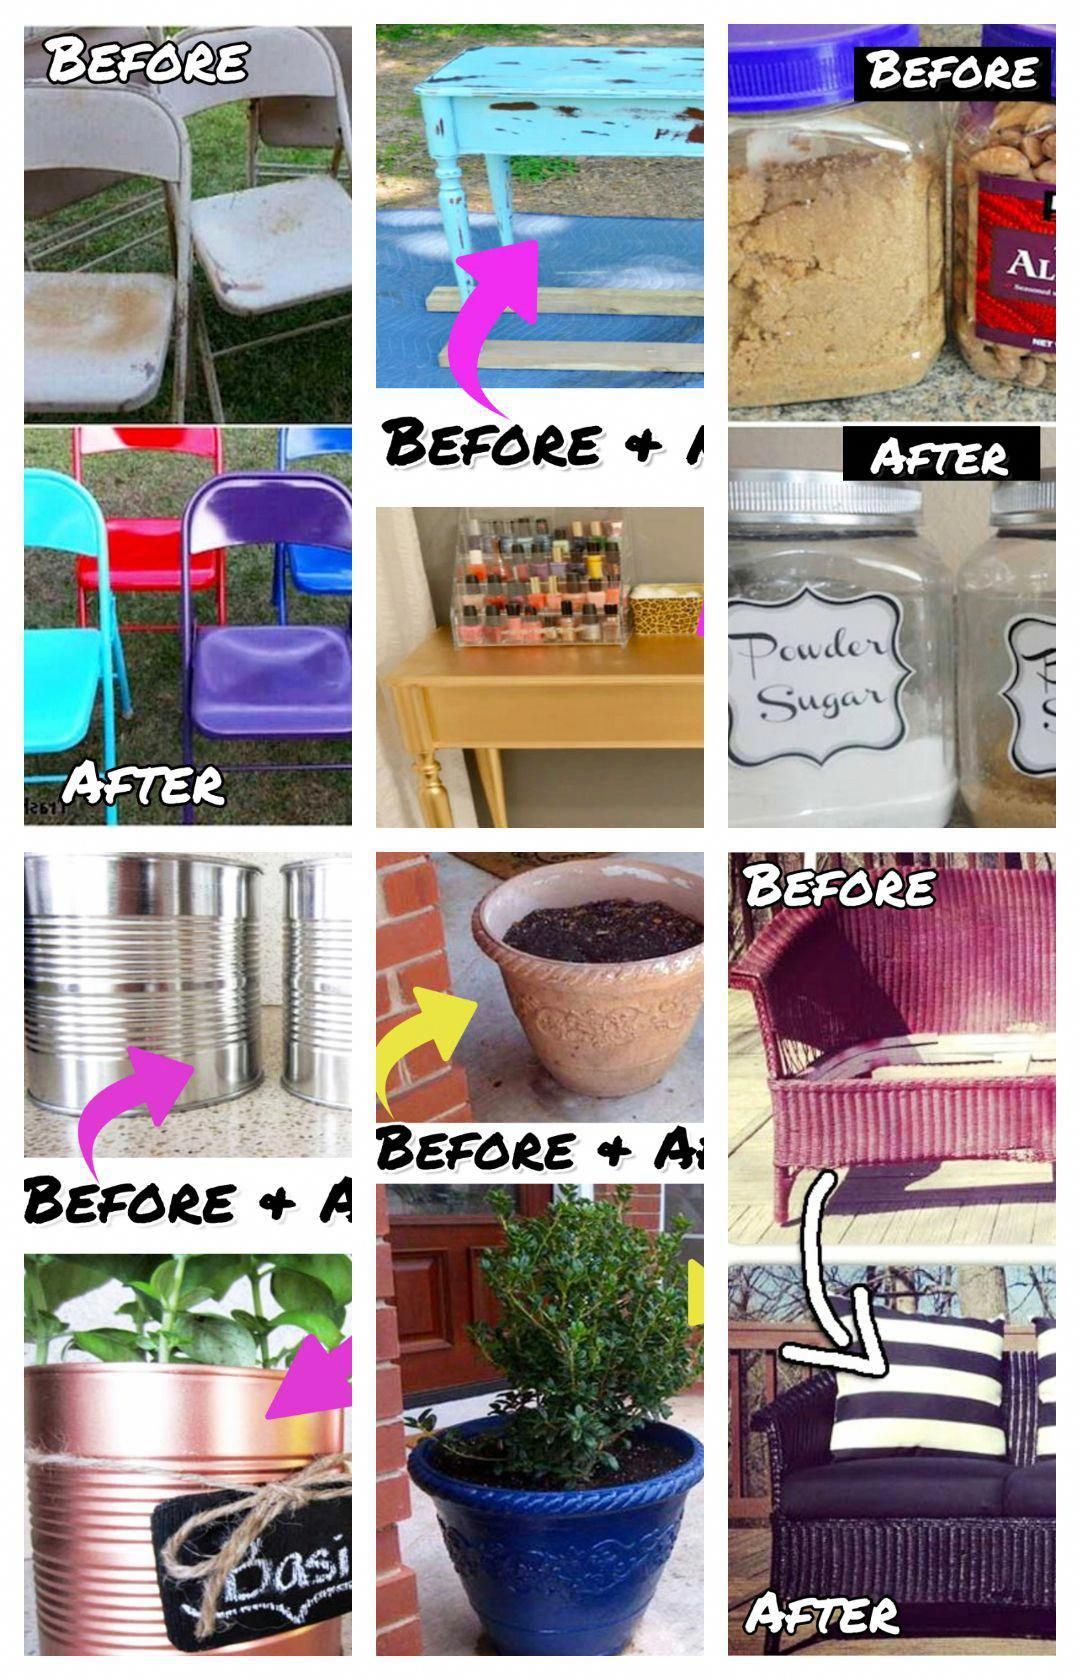 DIY Cheap Home Decorating Ideas   Before And After Pictures   Spray Paint Home  Decor Items   Creative Home Decor Ideas On A Budget #homedecorideas ...